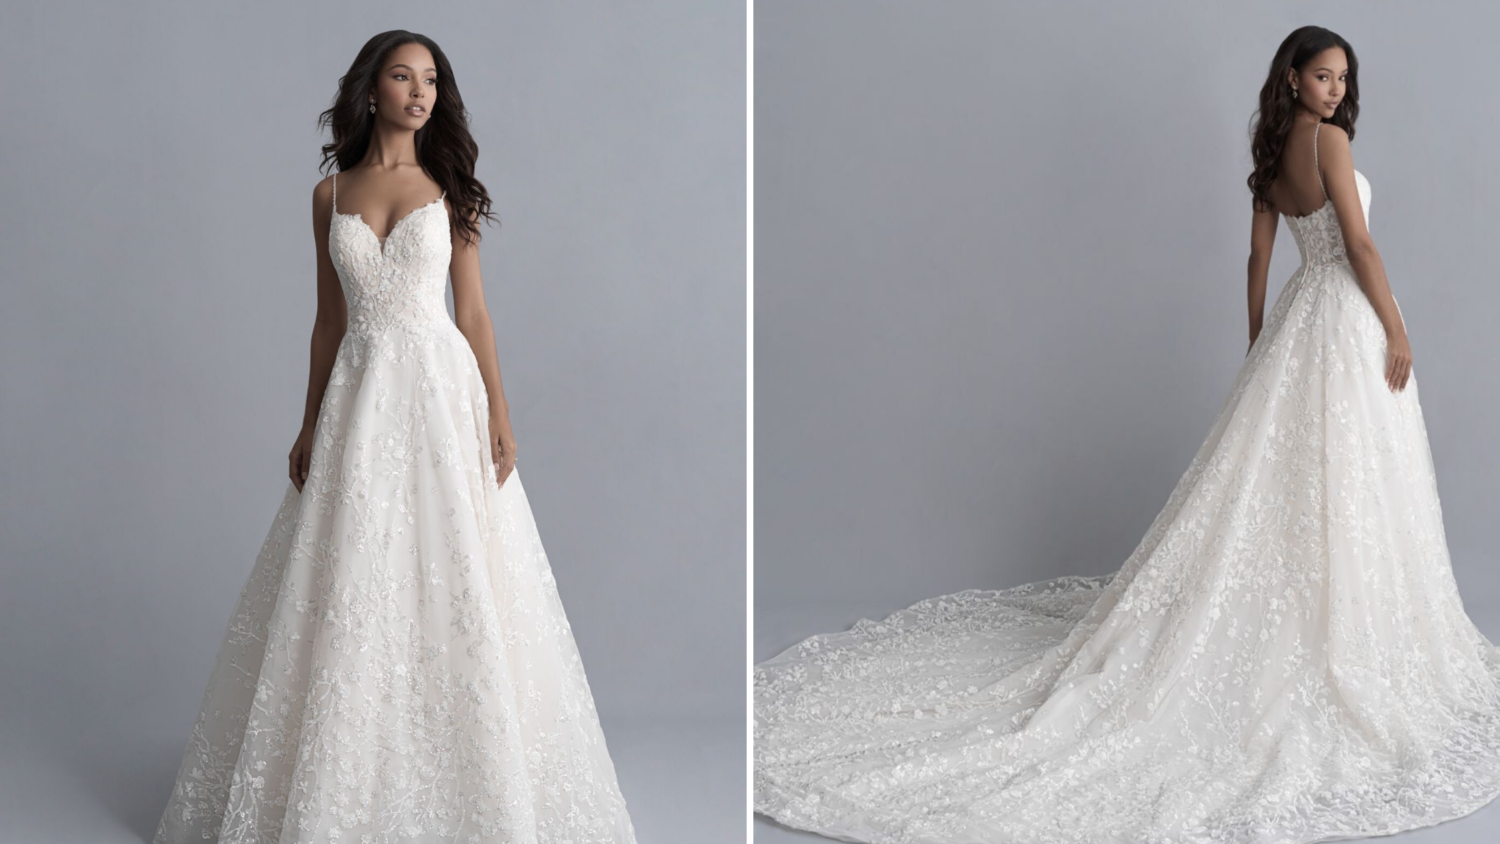 Disney Wedding Dresses Will Make Brides Feel Like Princesses On Their Special Day